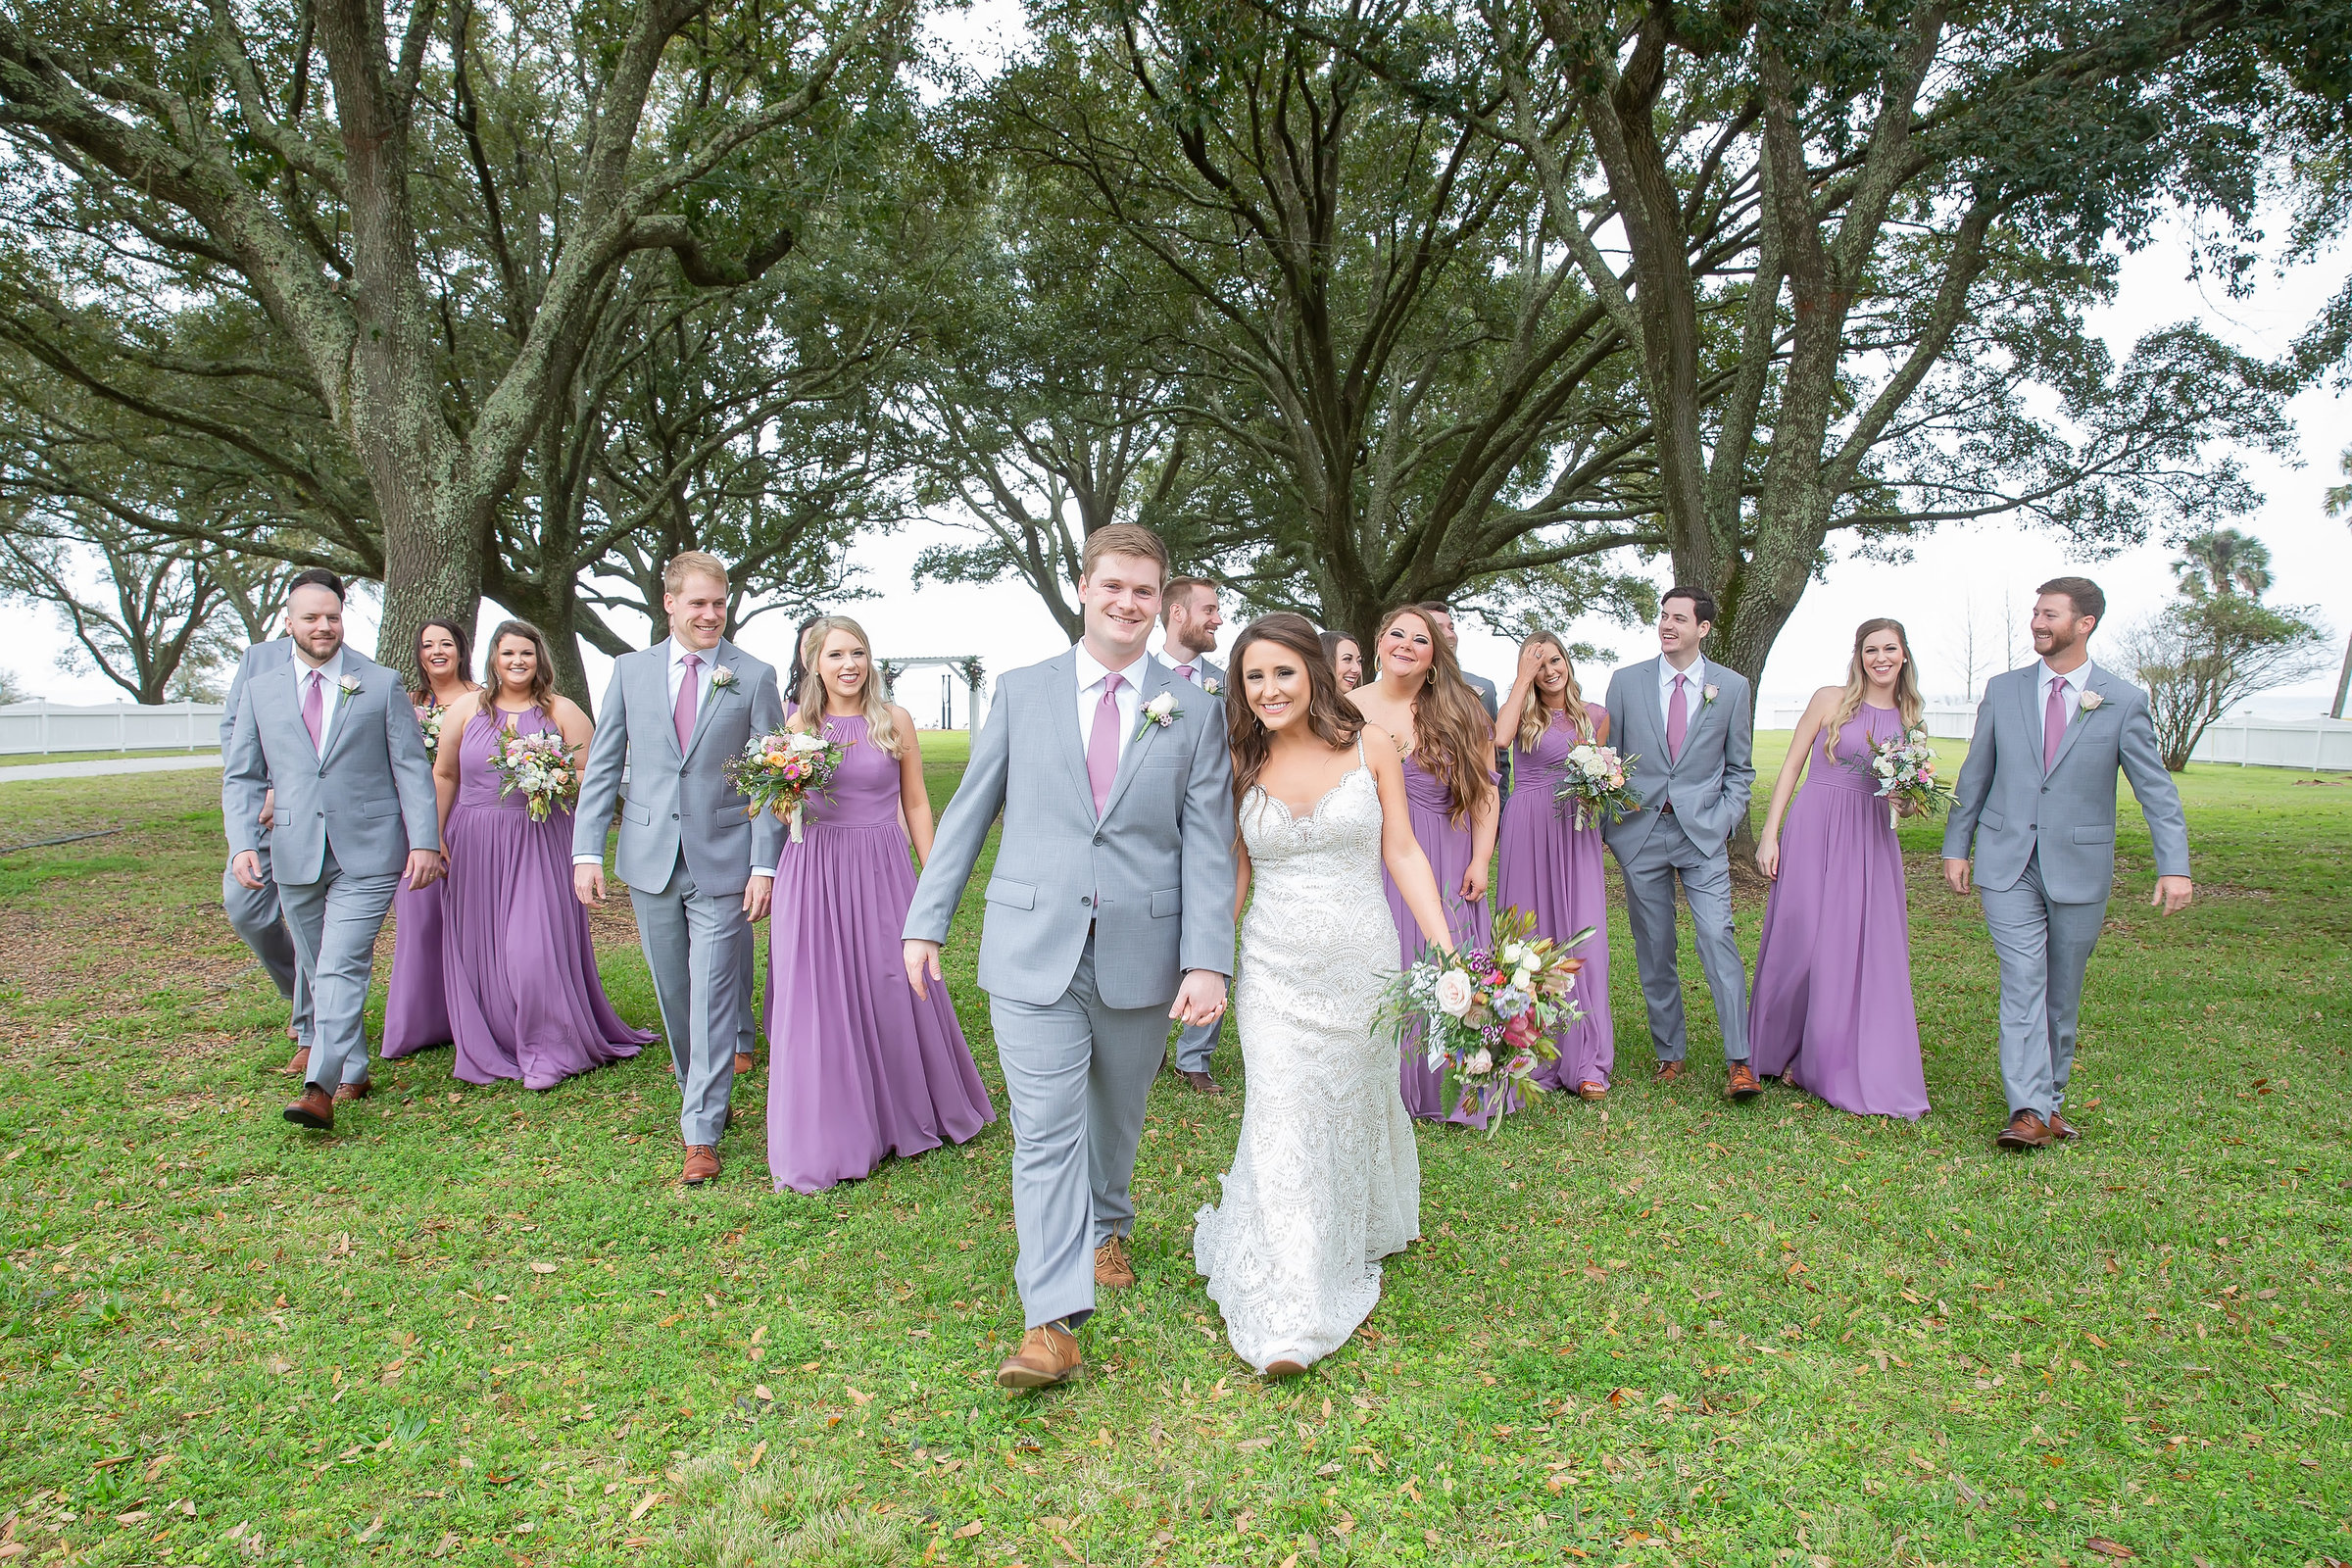 Kayce-Stork-Photography-Biloxi-Wedding-Photographers155